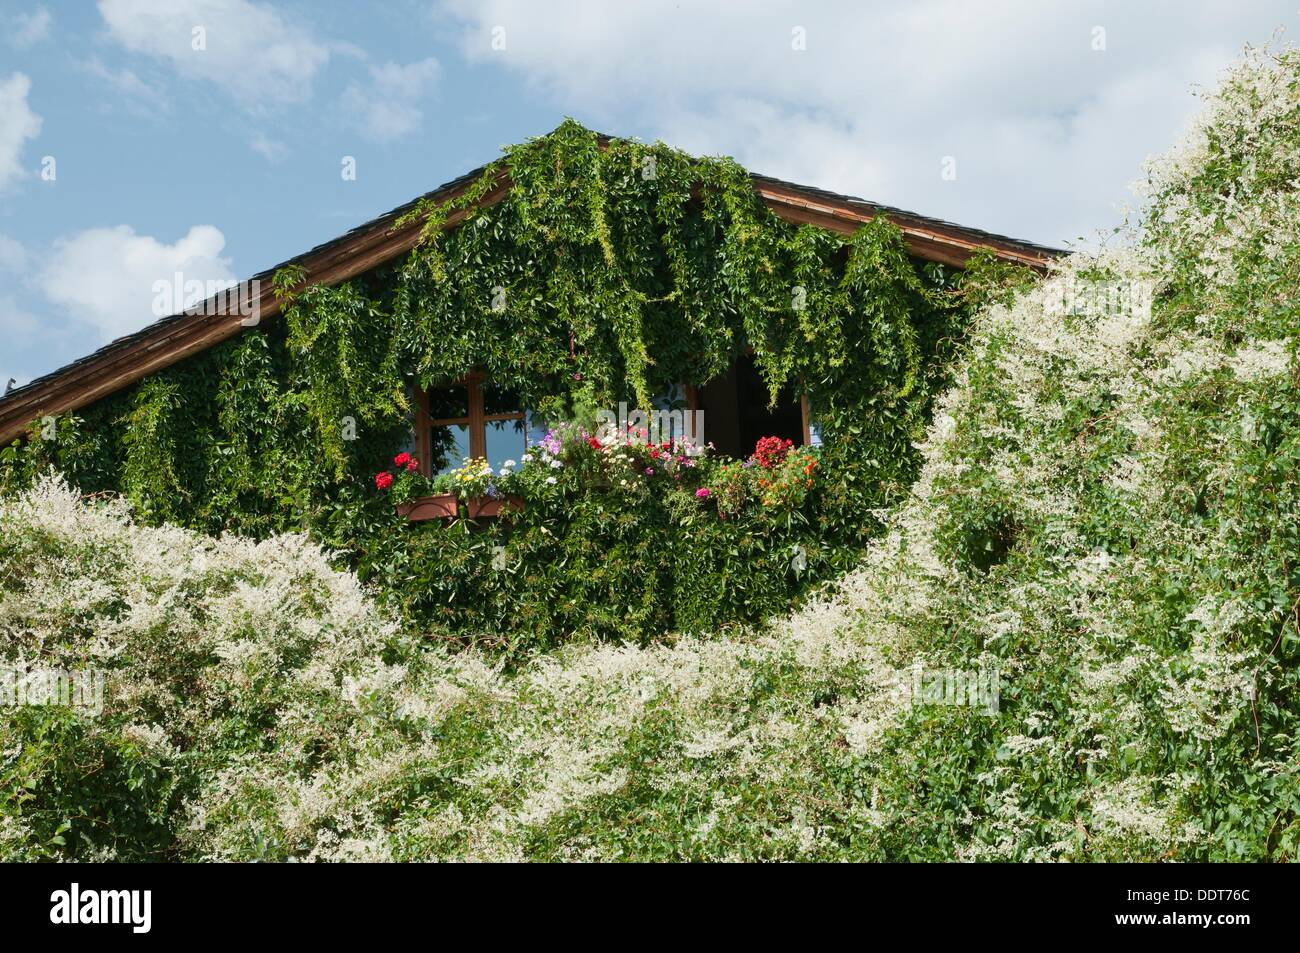 climbing plants on the outer walls of a traditional house in the village of ller cerdanya valley pyrenees spain - Climbing Plants